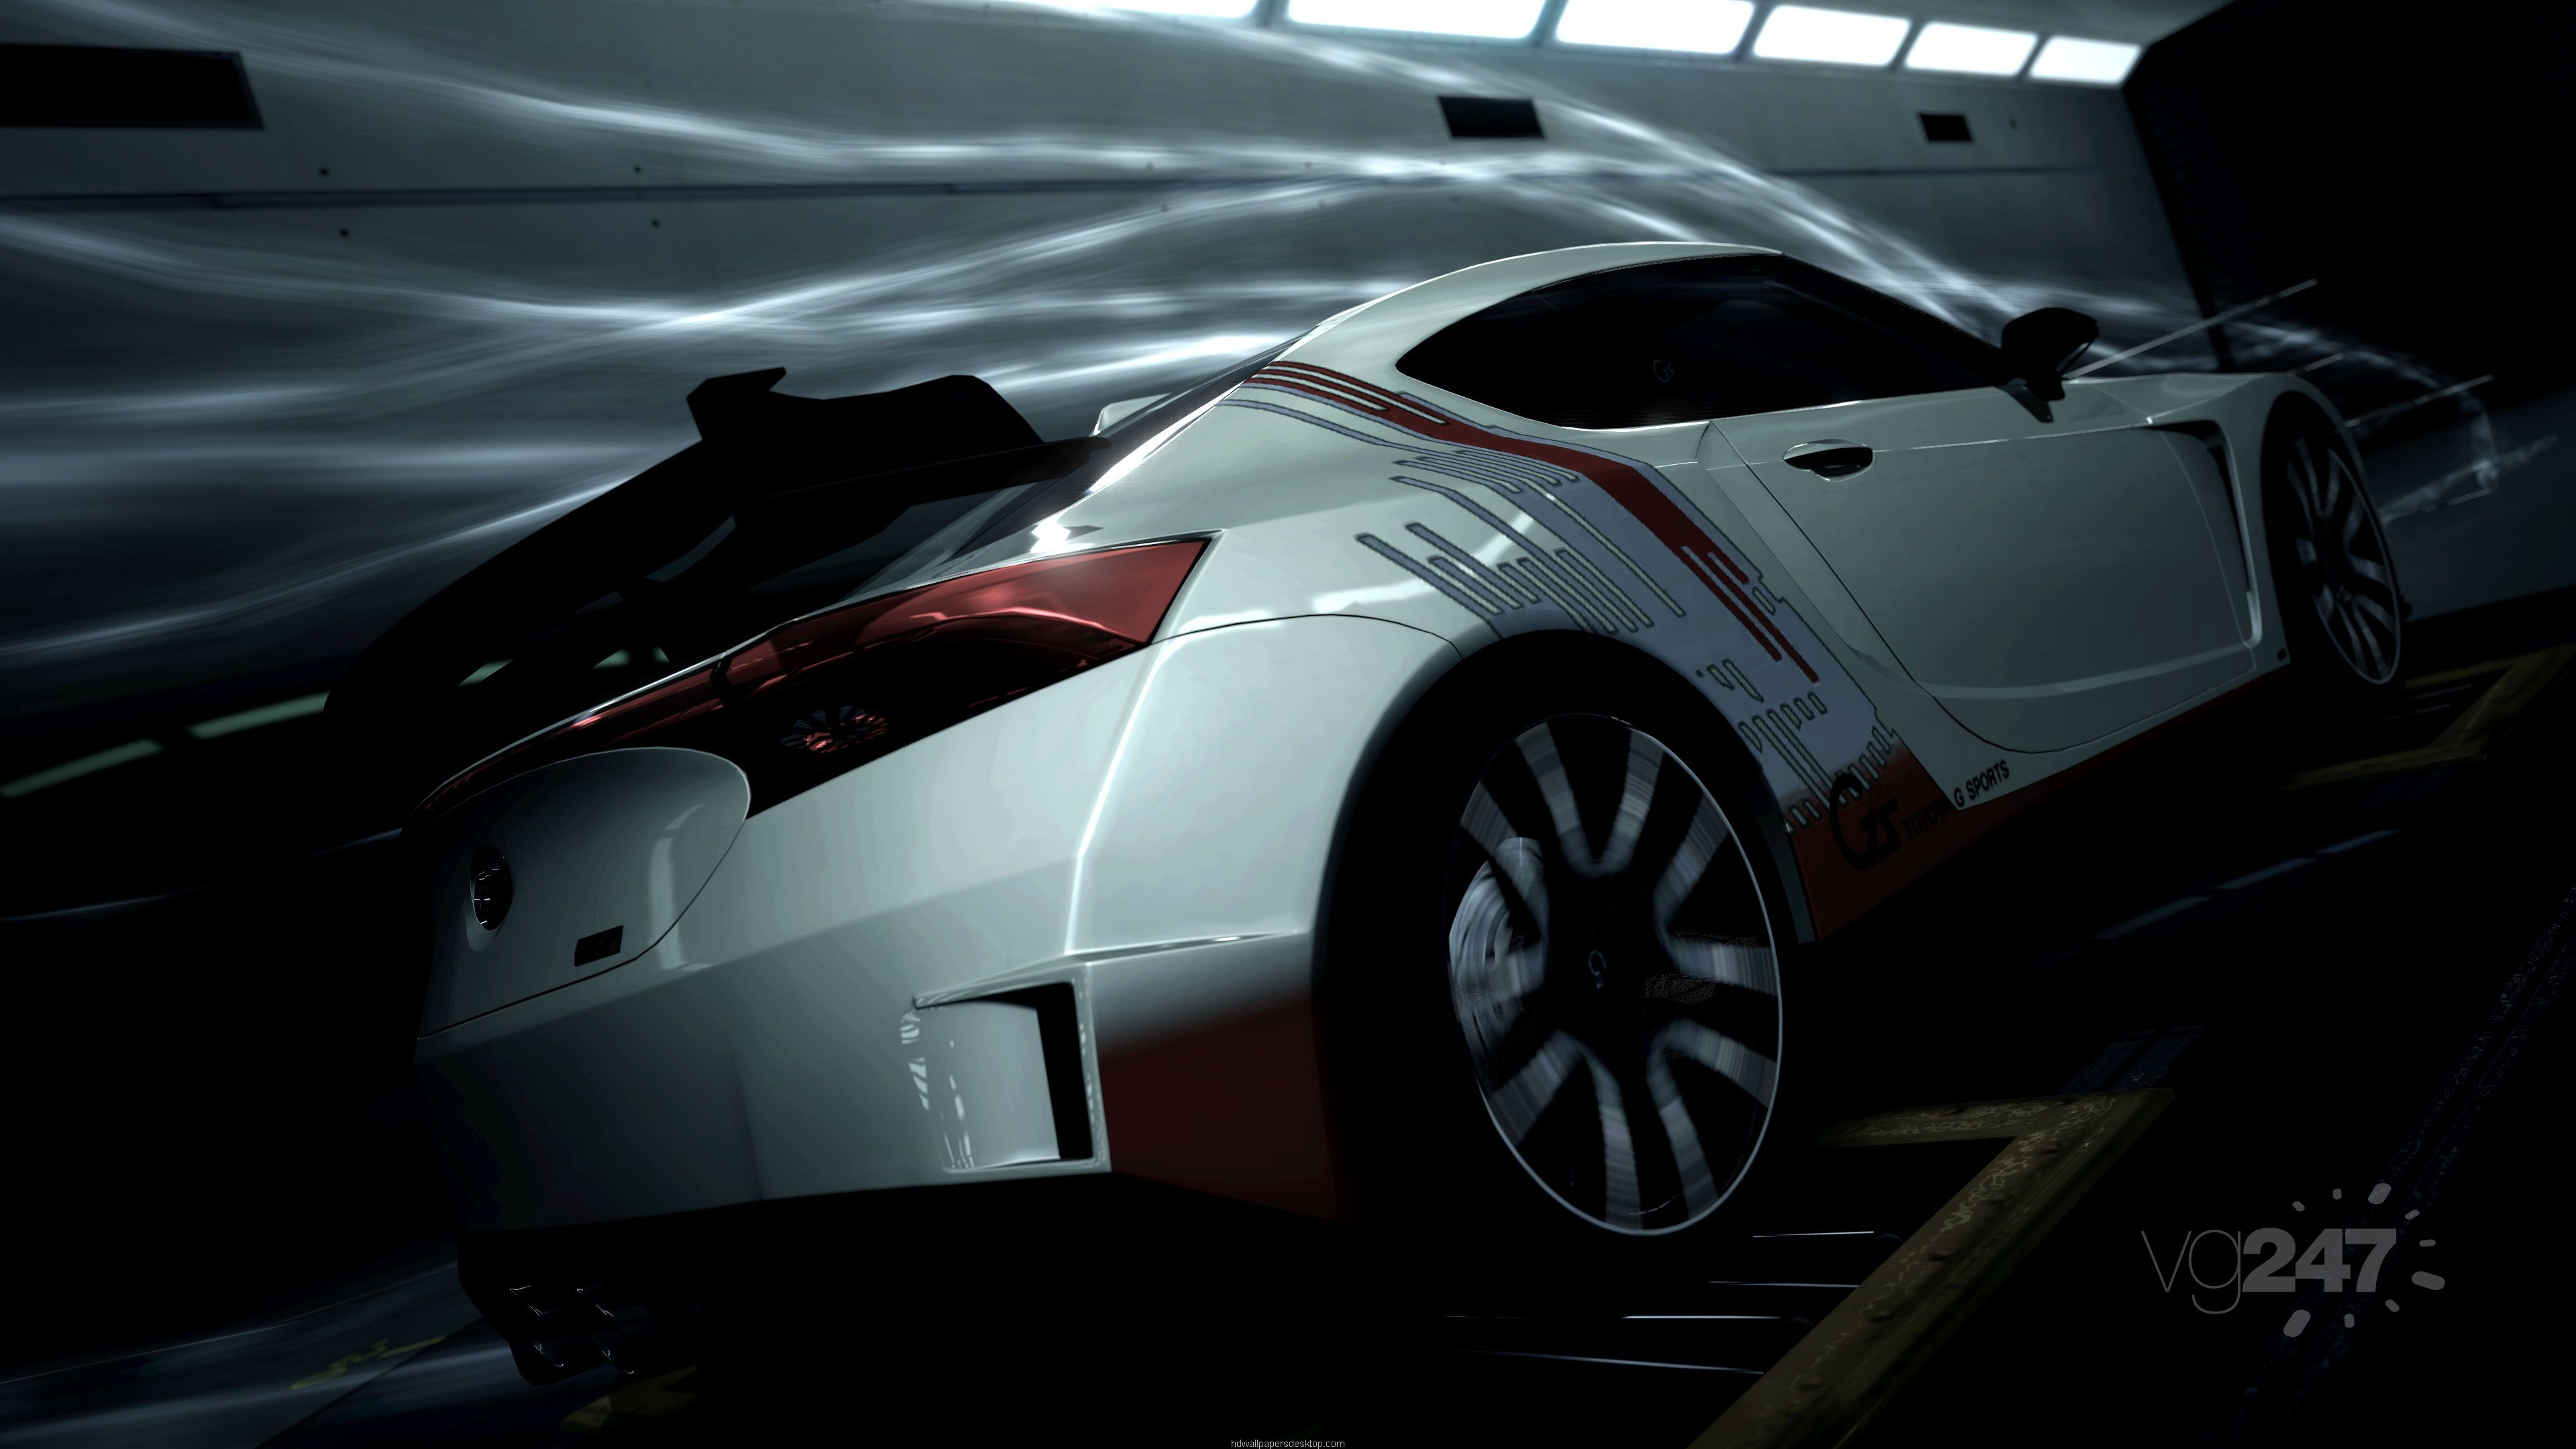 Cars Games Wallpapers HD Desktop Wallpapers 3840x2160 3840x2160